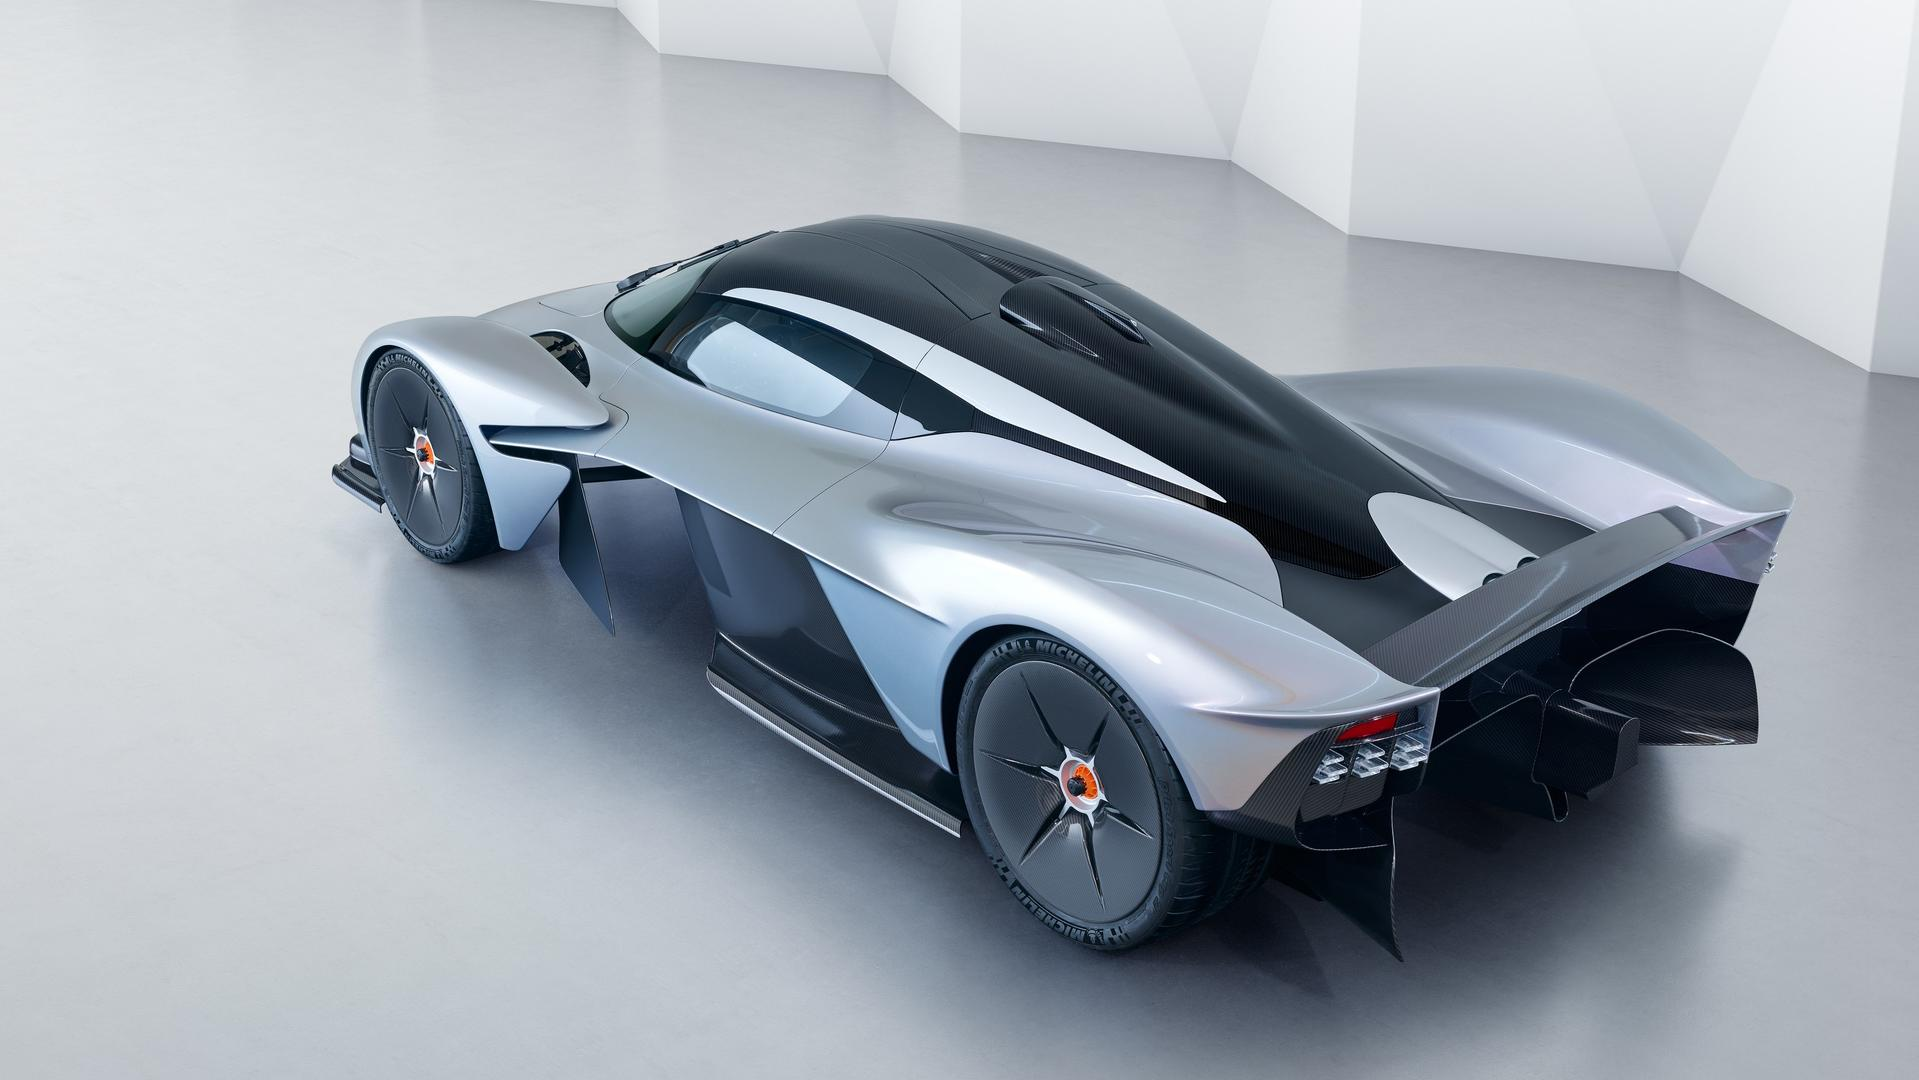 Aston Martin Valkyrie To Pack 1 130 Horsepower Says Cosworth